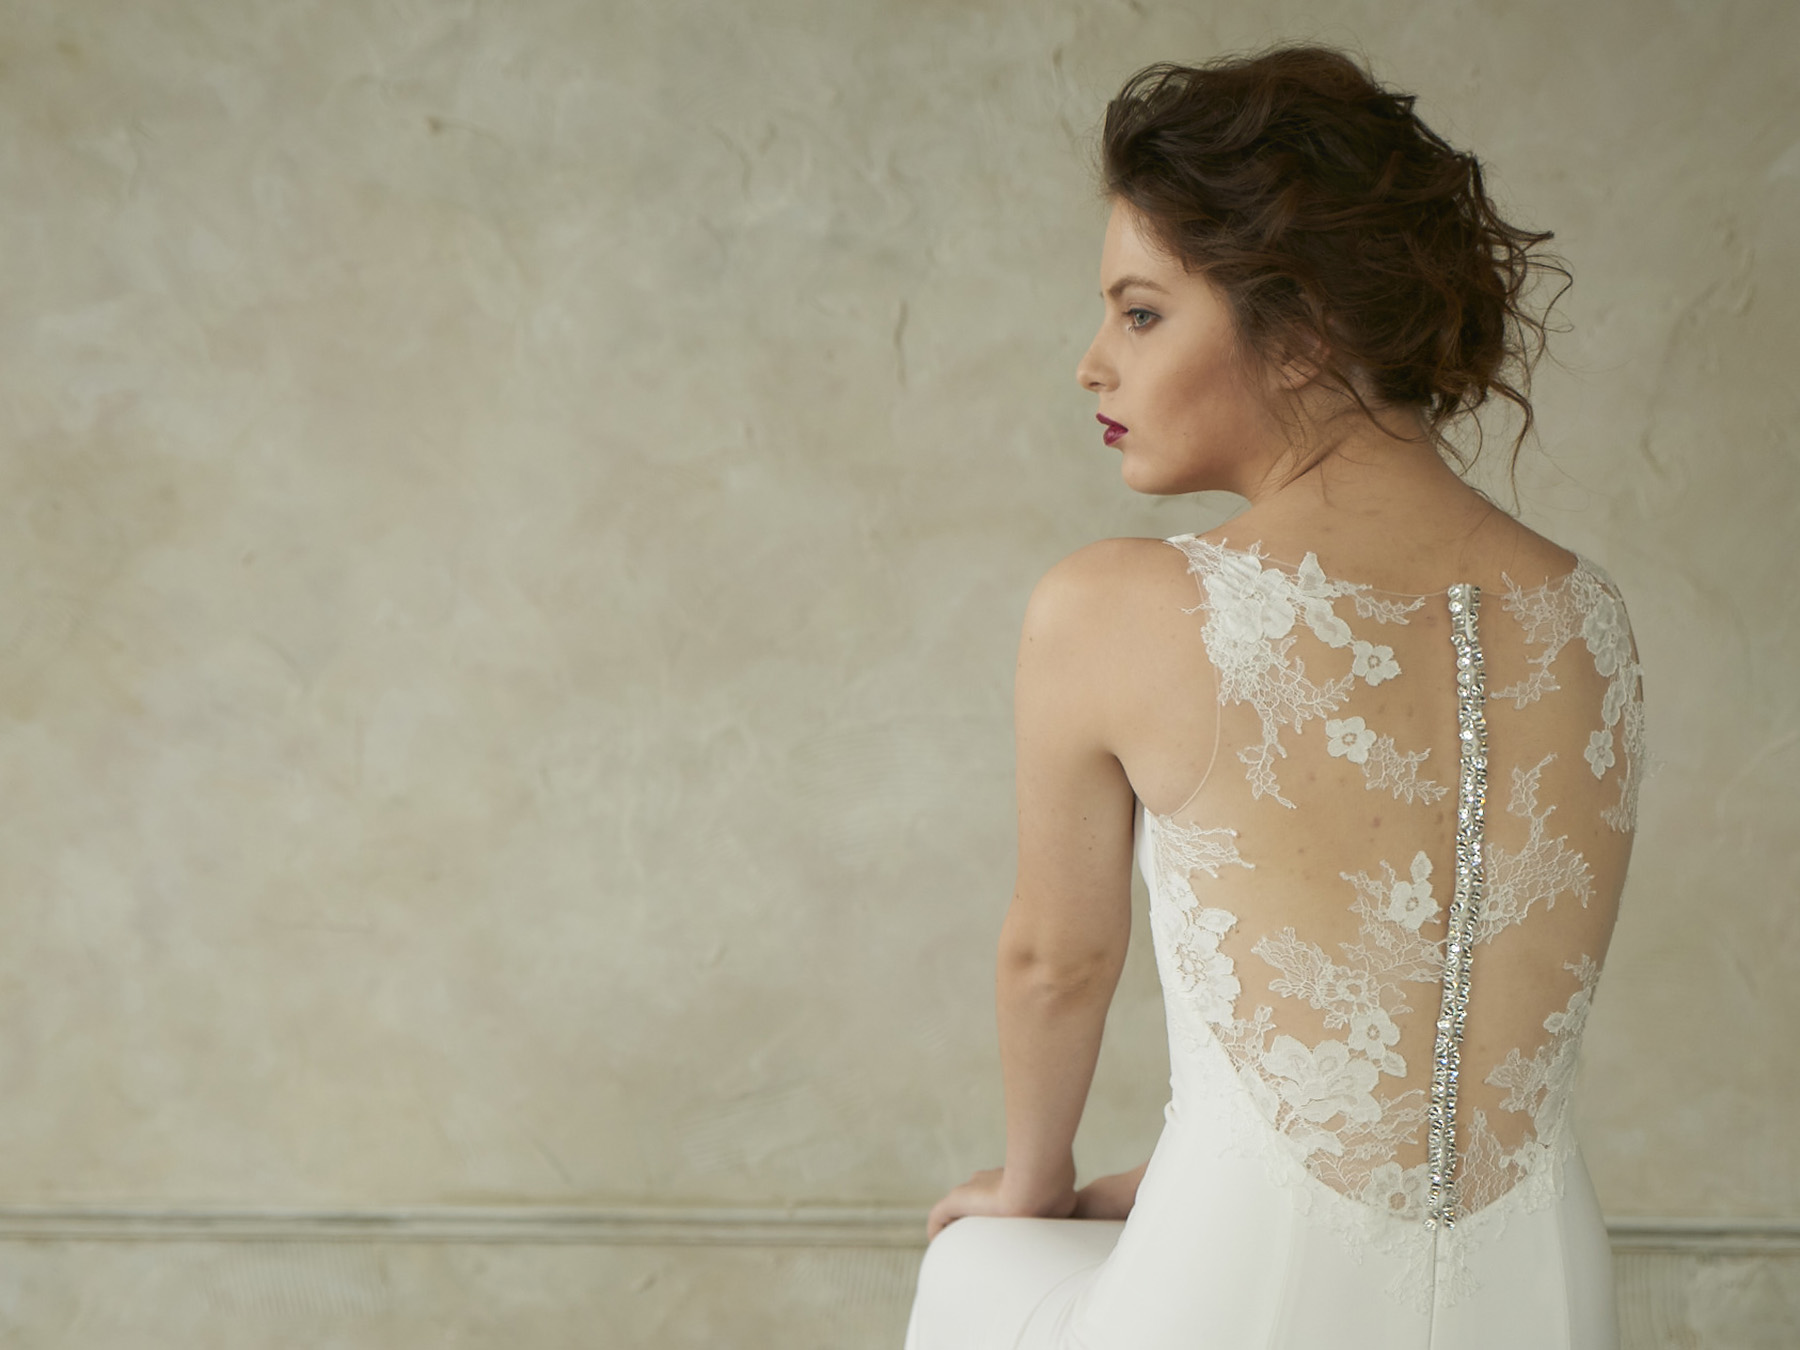 la soie bridal private label wedding gowns